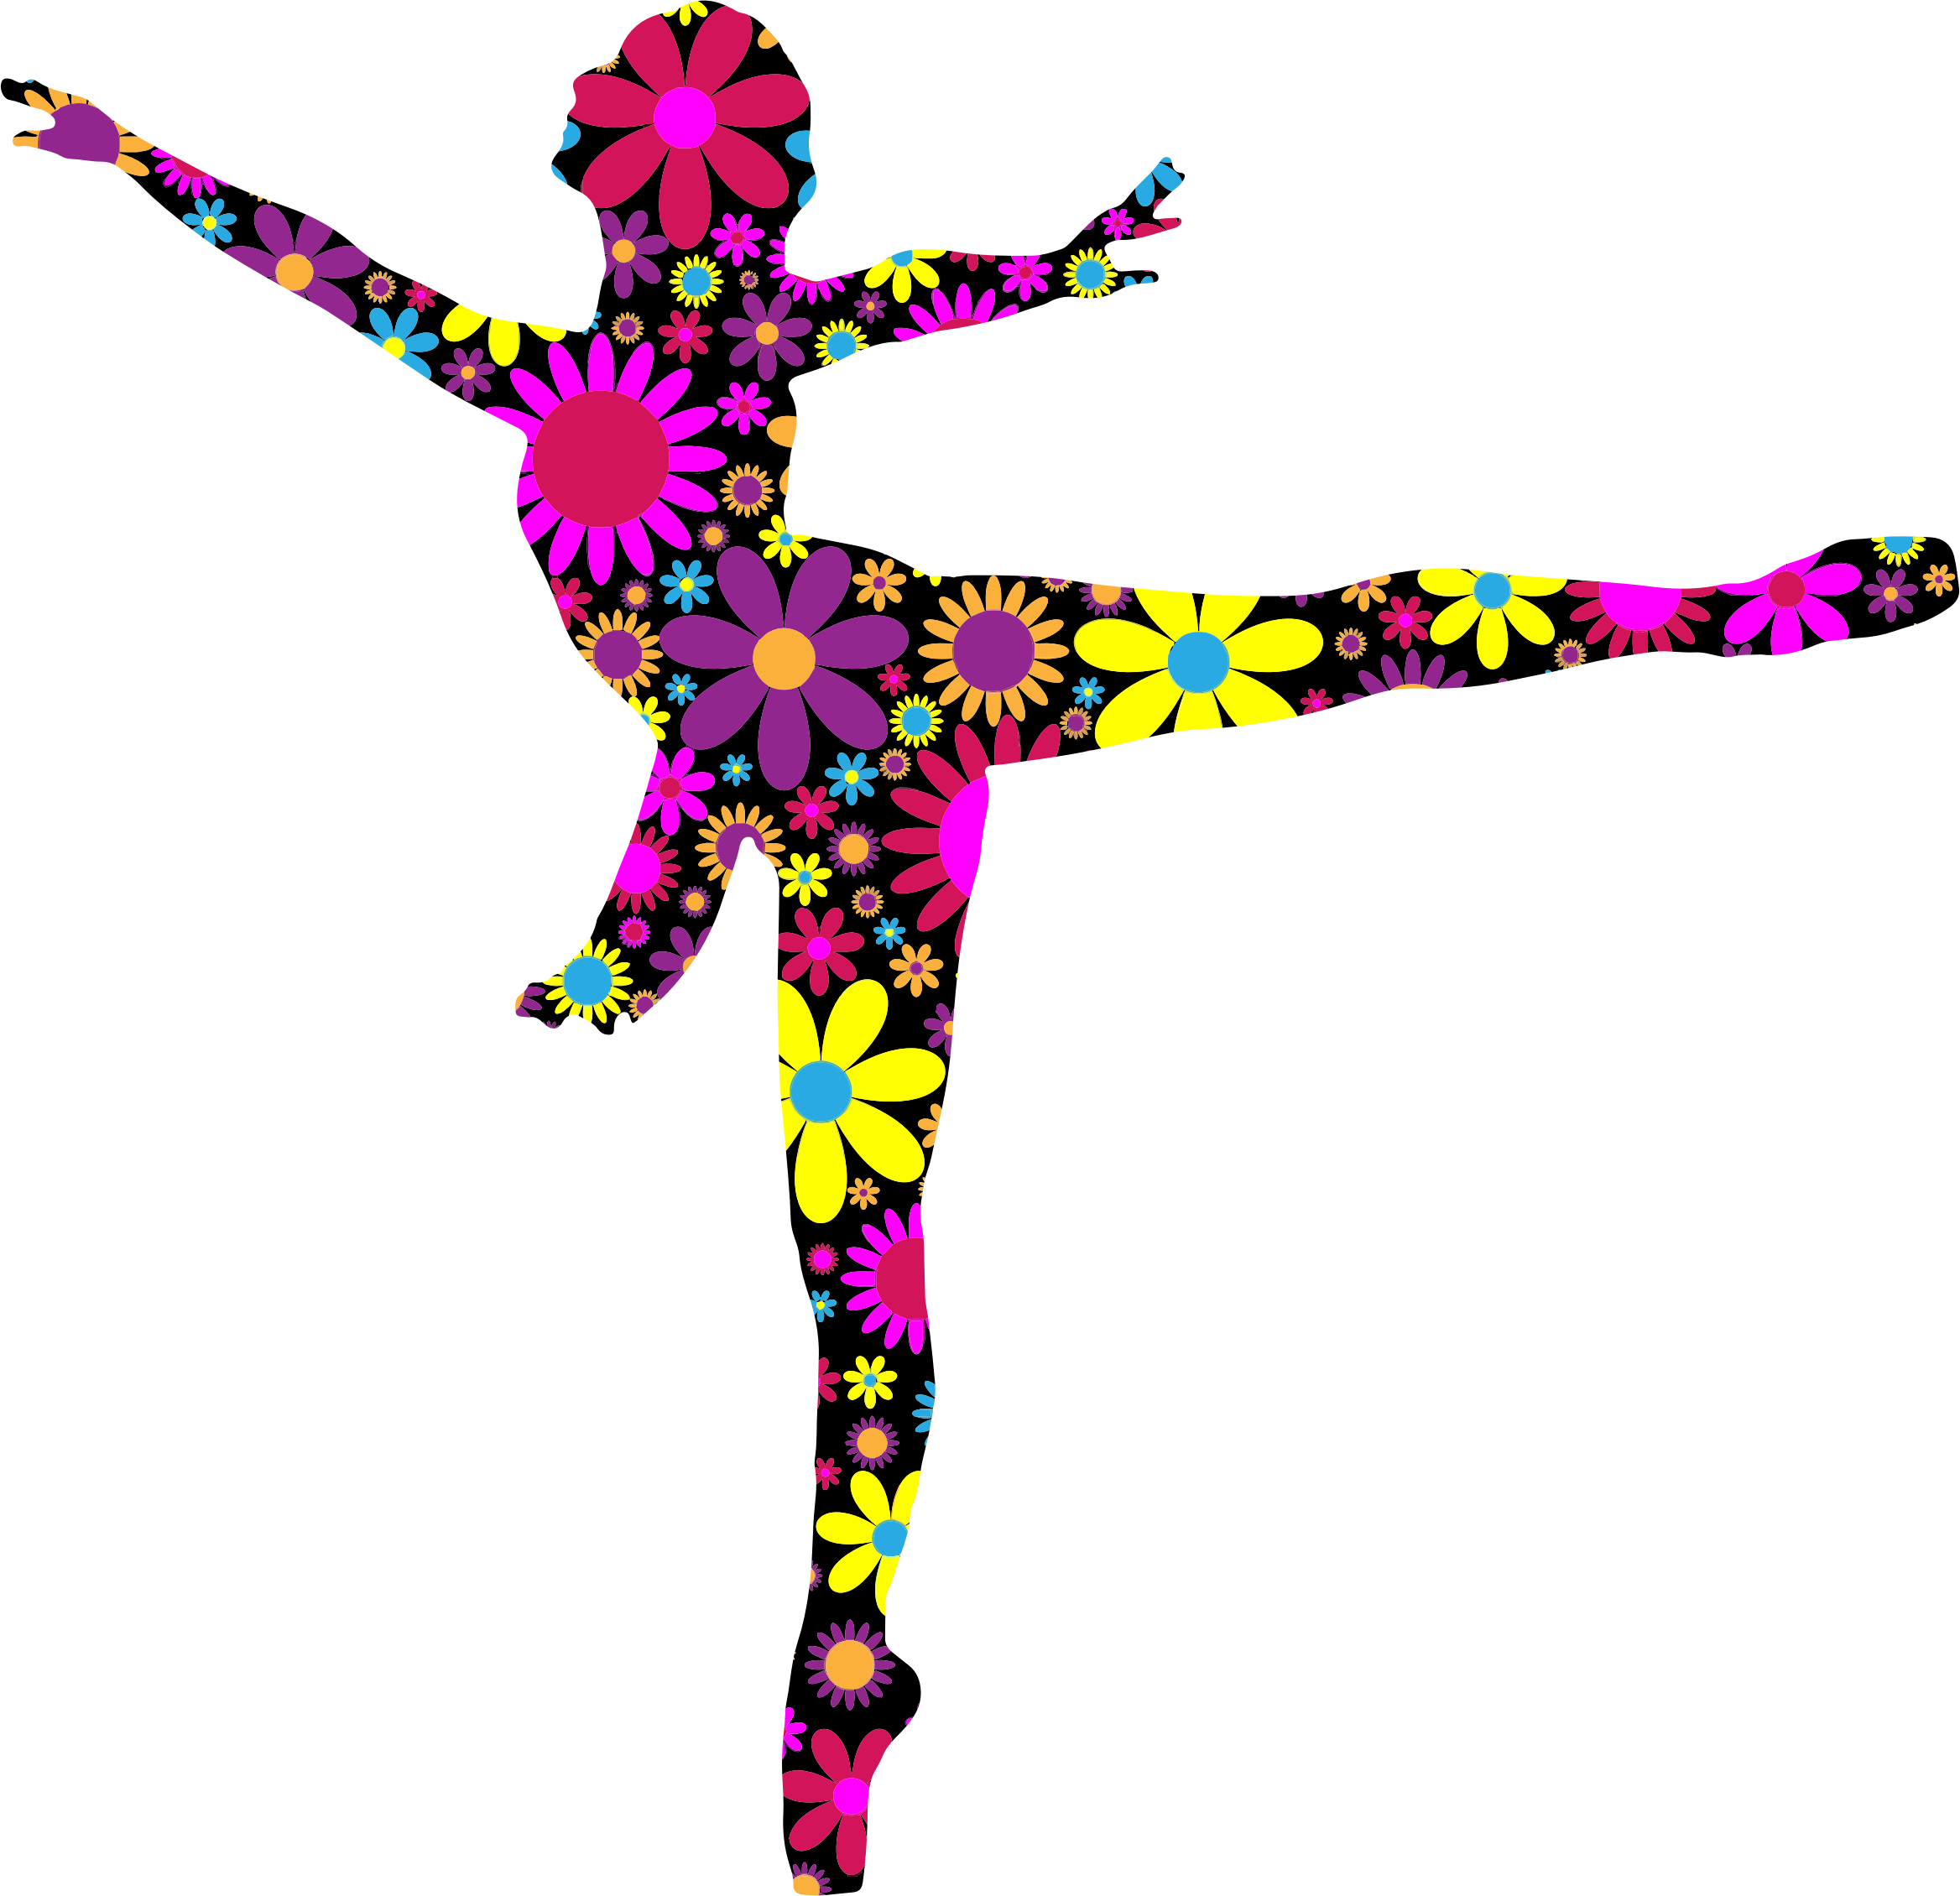 2336x2260 Floral Ballet Dancer Silhouette Icons Png